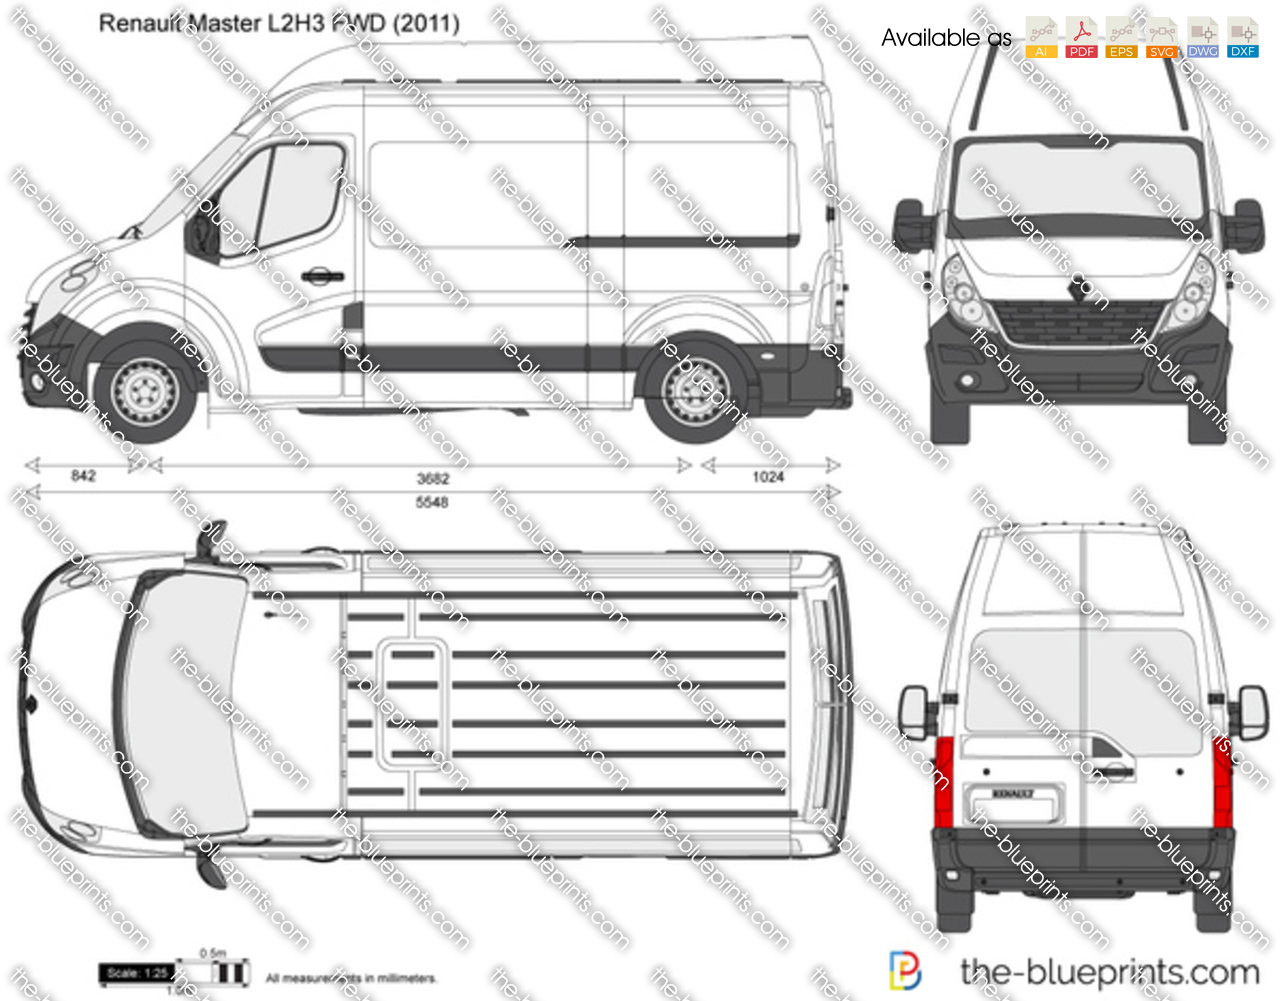 the vector drawing renault master l2h3 fwd. Black Bedroom Furniture Sets. Home Design Ideas